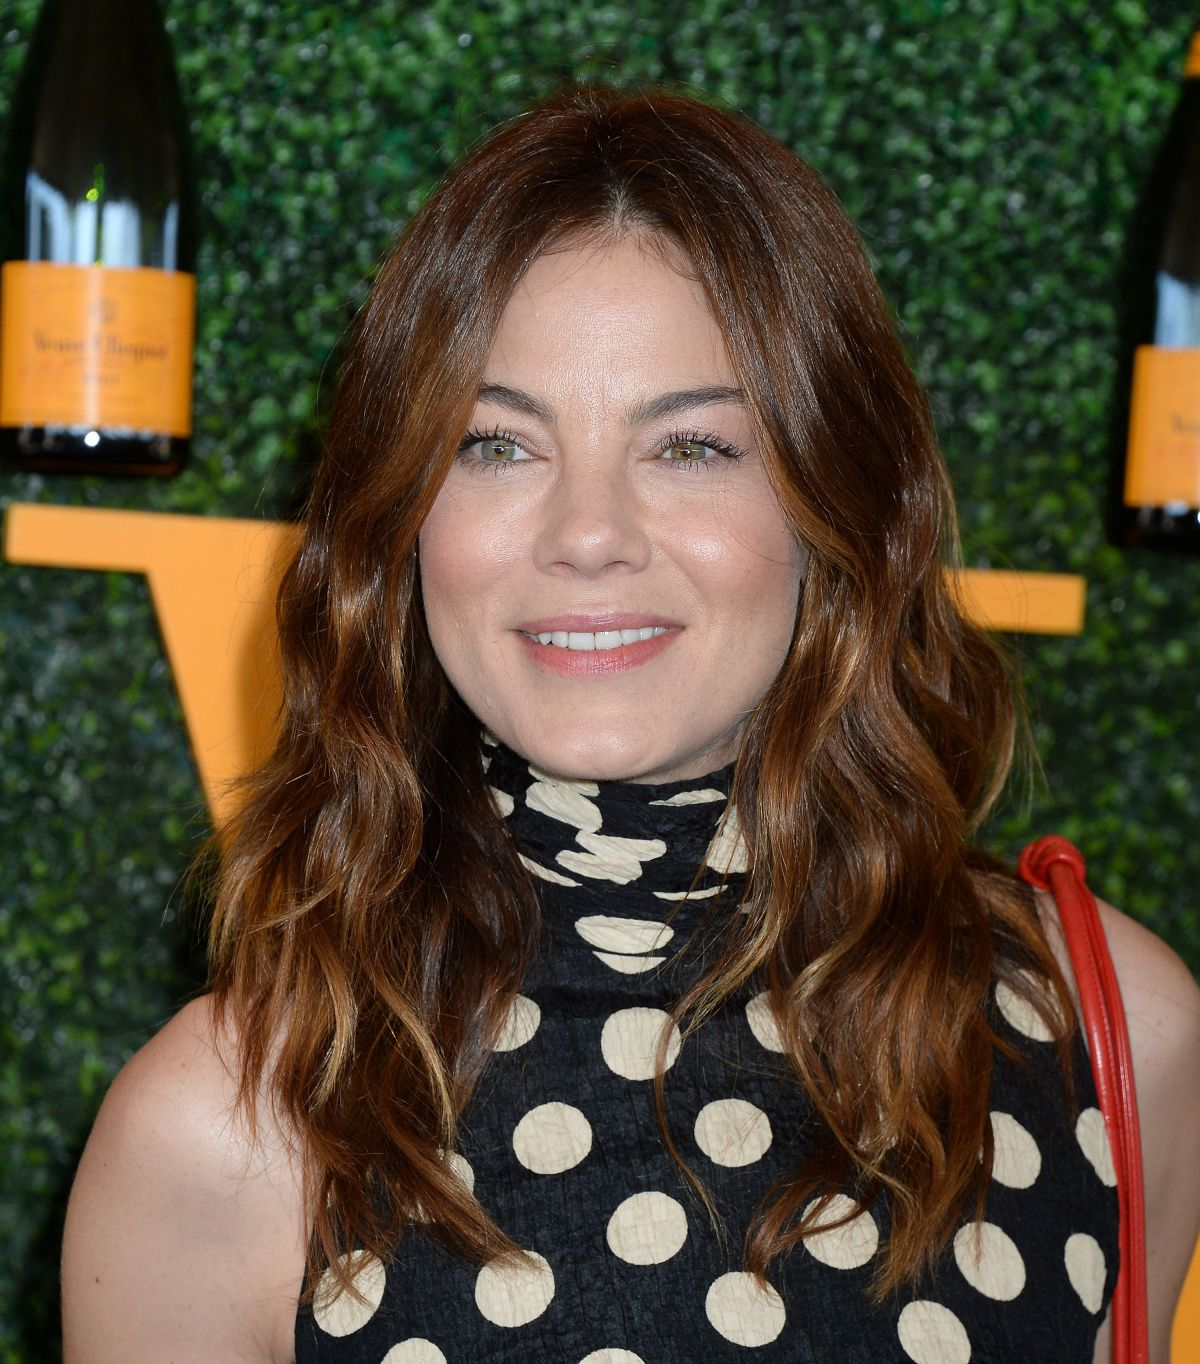 MICHELLE MONAGHAN at Veuve Clicquot Polo Classic in Los Angeles 10/15/2016